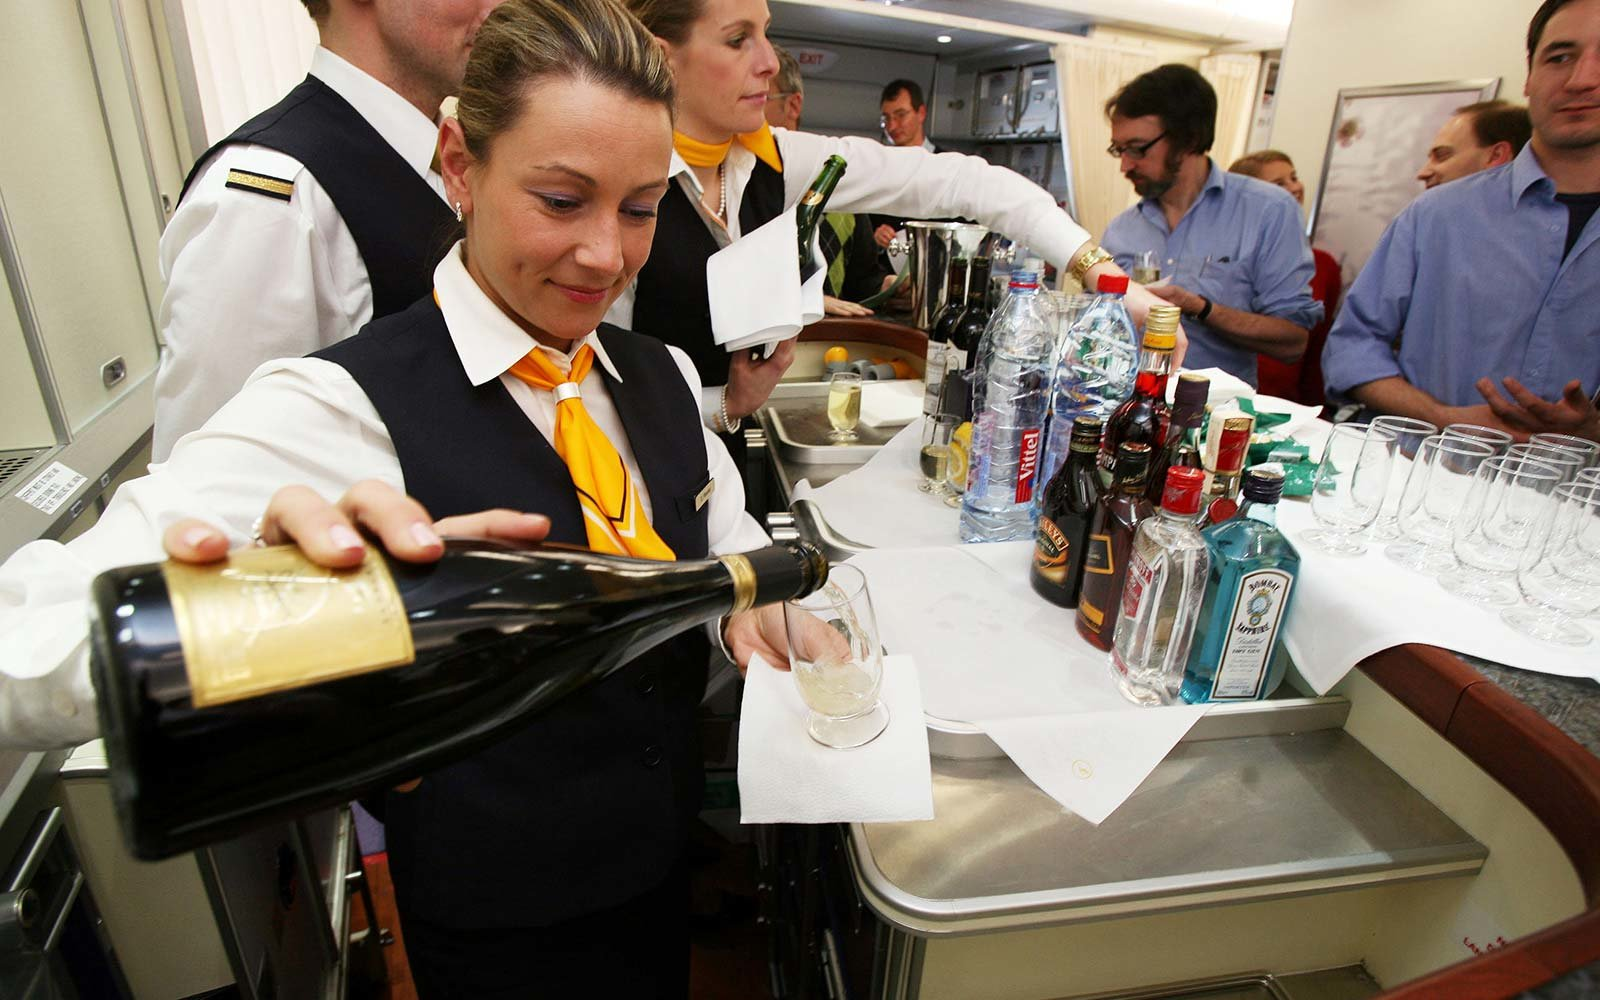 Ryanair is calling for a two-drink alcohol limit in airport bars